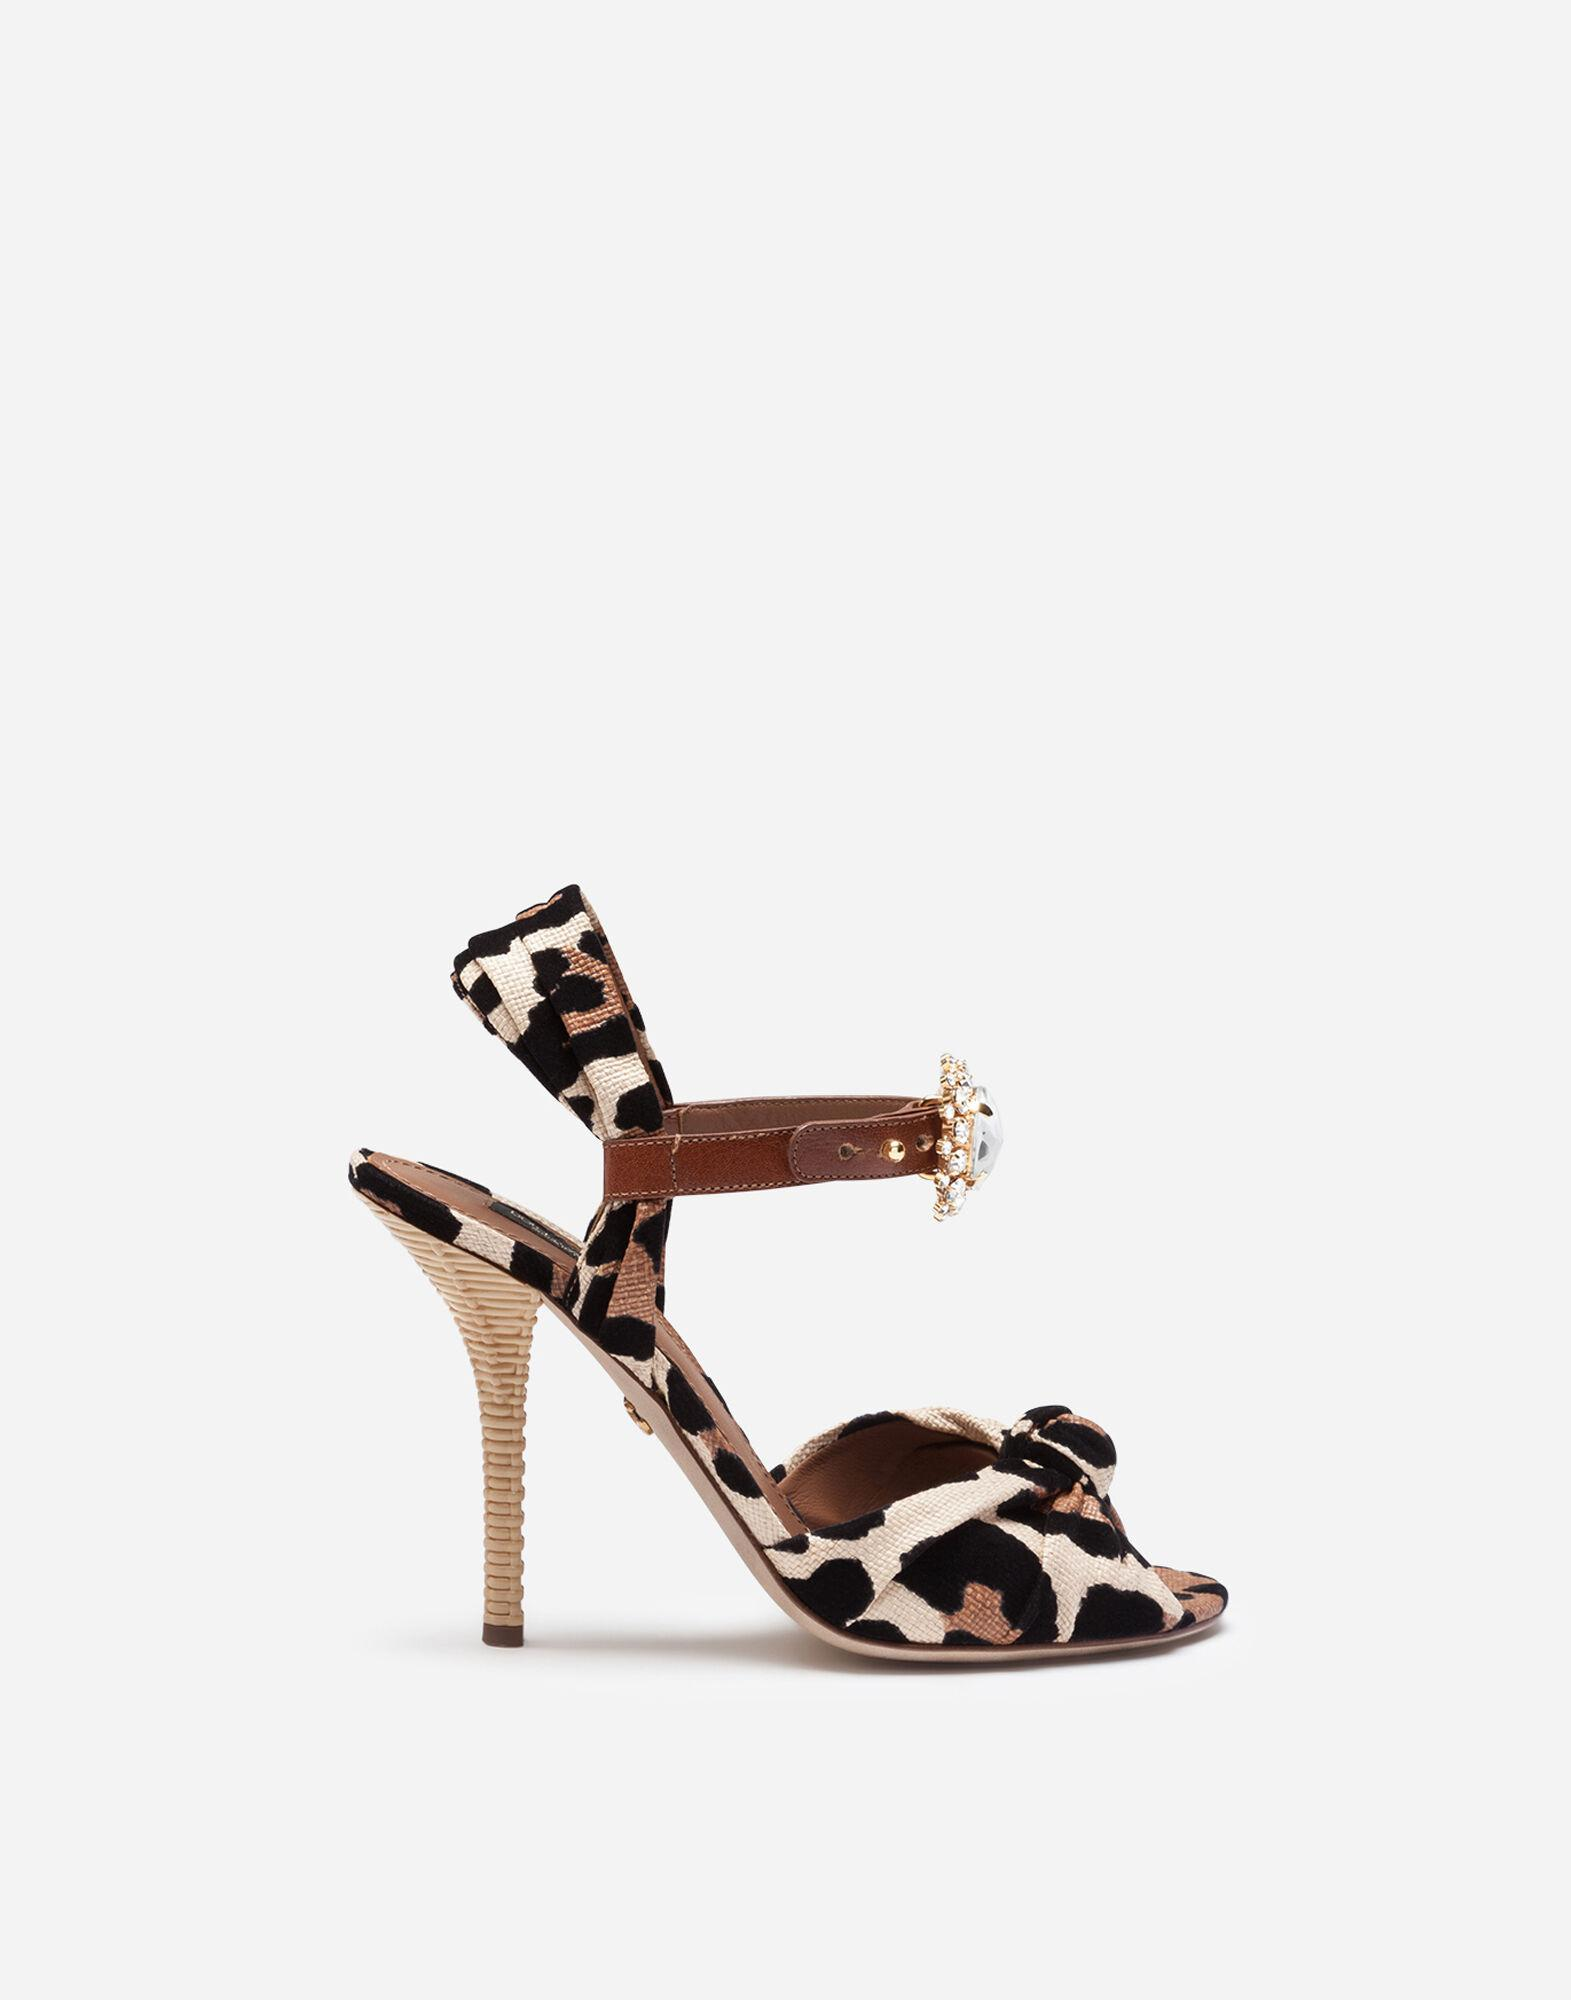 Raffia sandals with flocked leopard print with bejeweled buckle